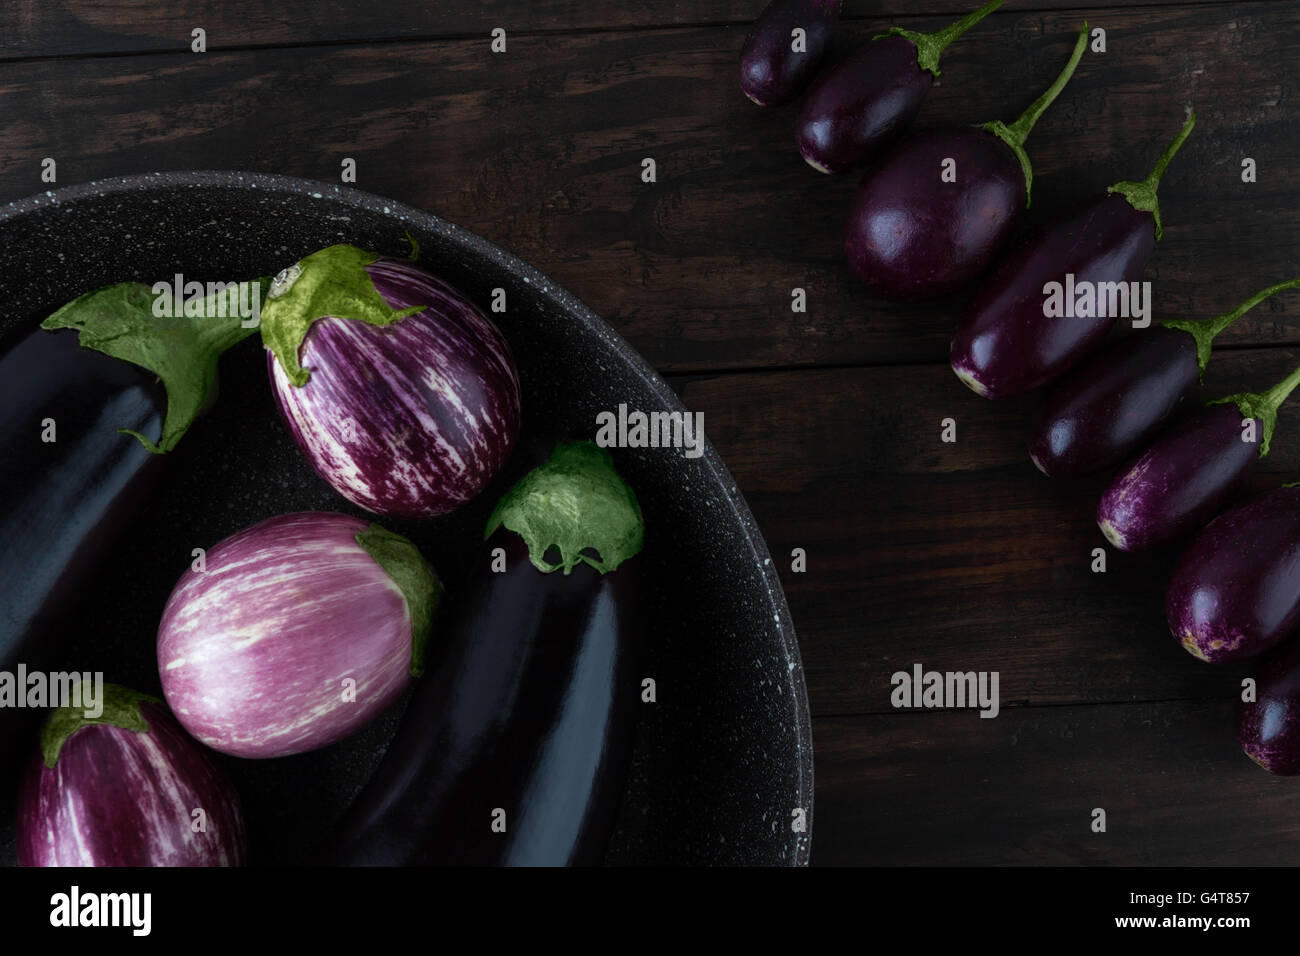 Eggplant varieties arranged creatively on frying pan and wooden table closeup. Top view. - Stock Image